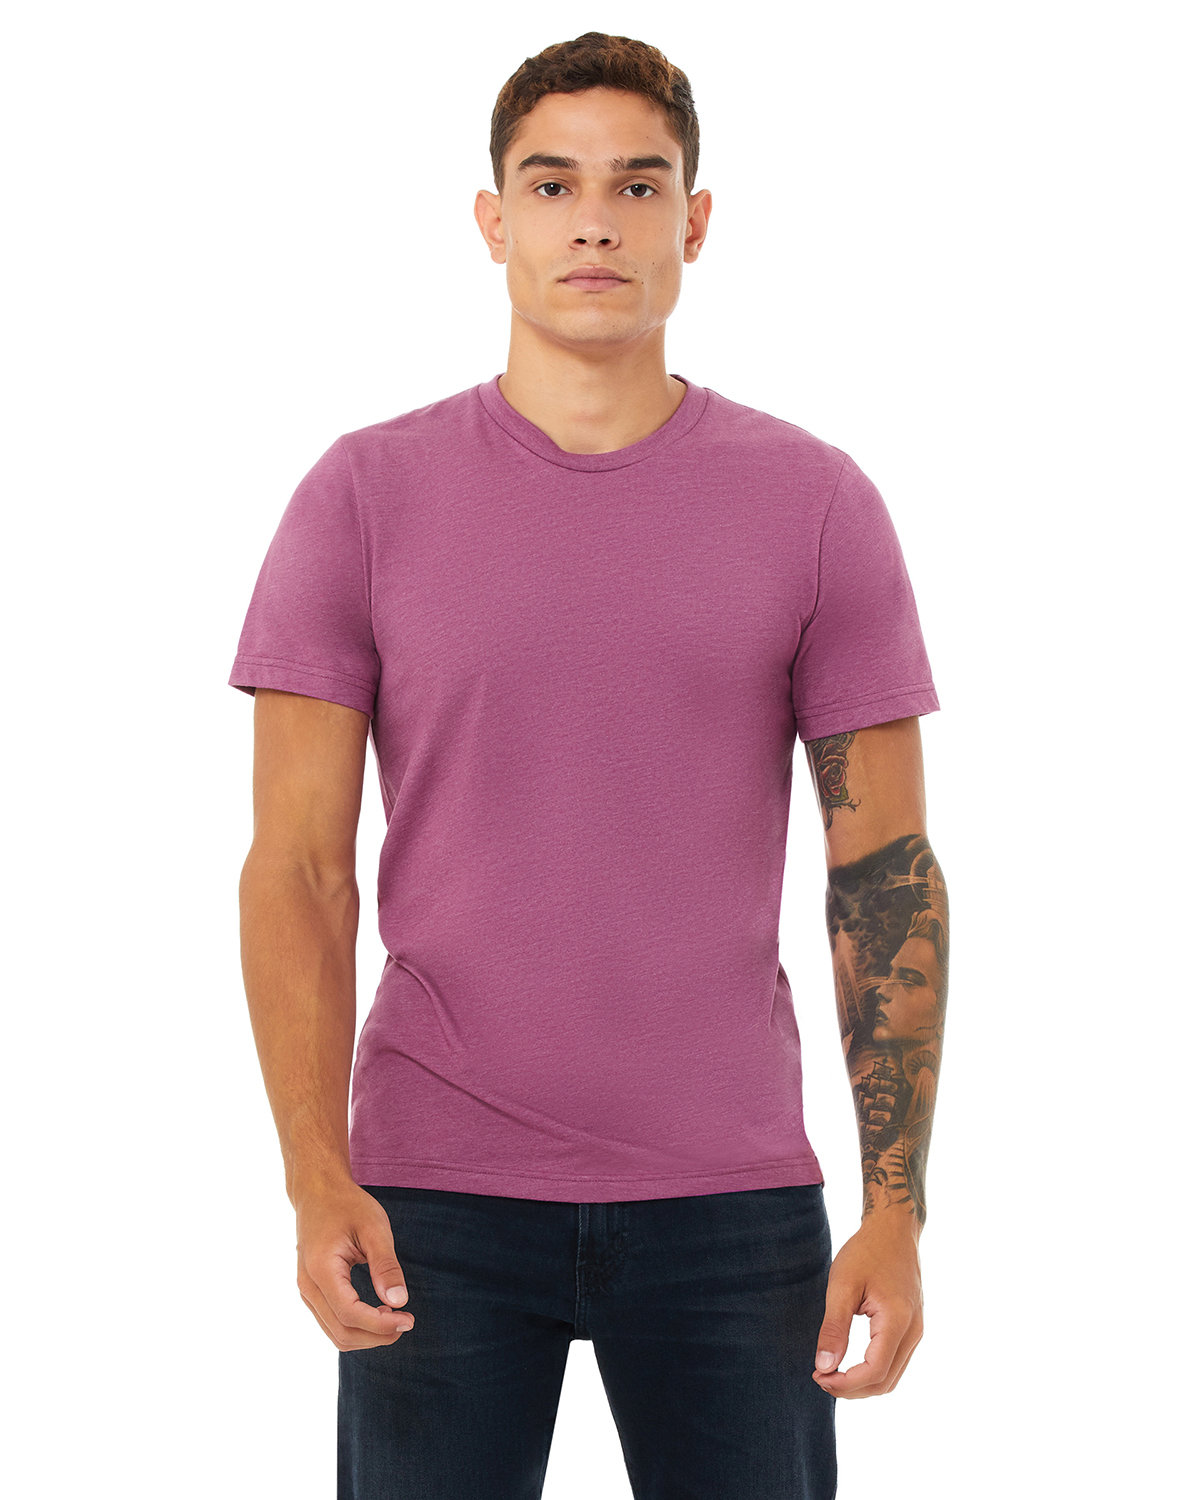 Bella + Canvas Unisex Heather CVC T-Shirt HEATHER MAGENTA